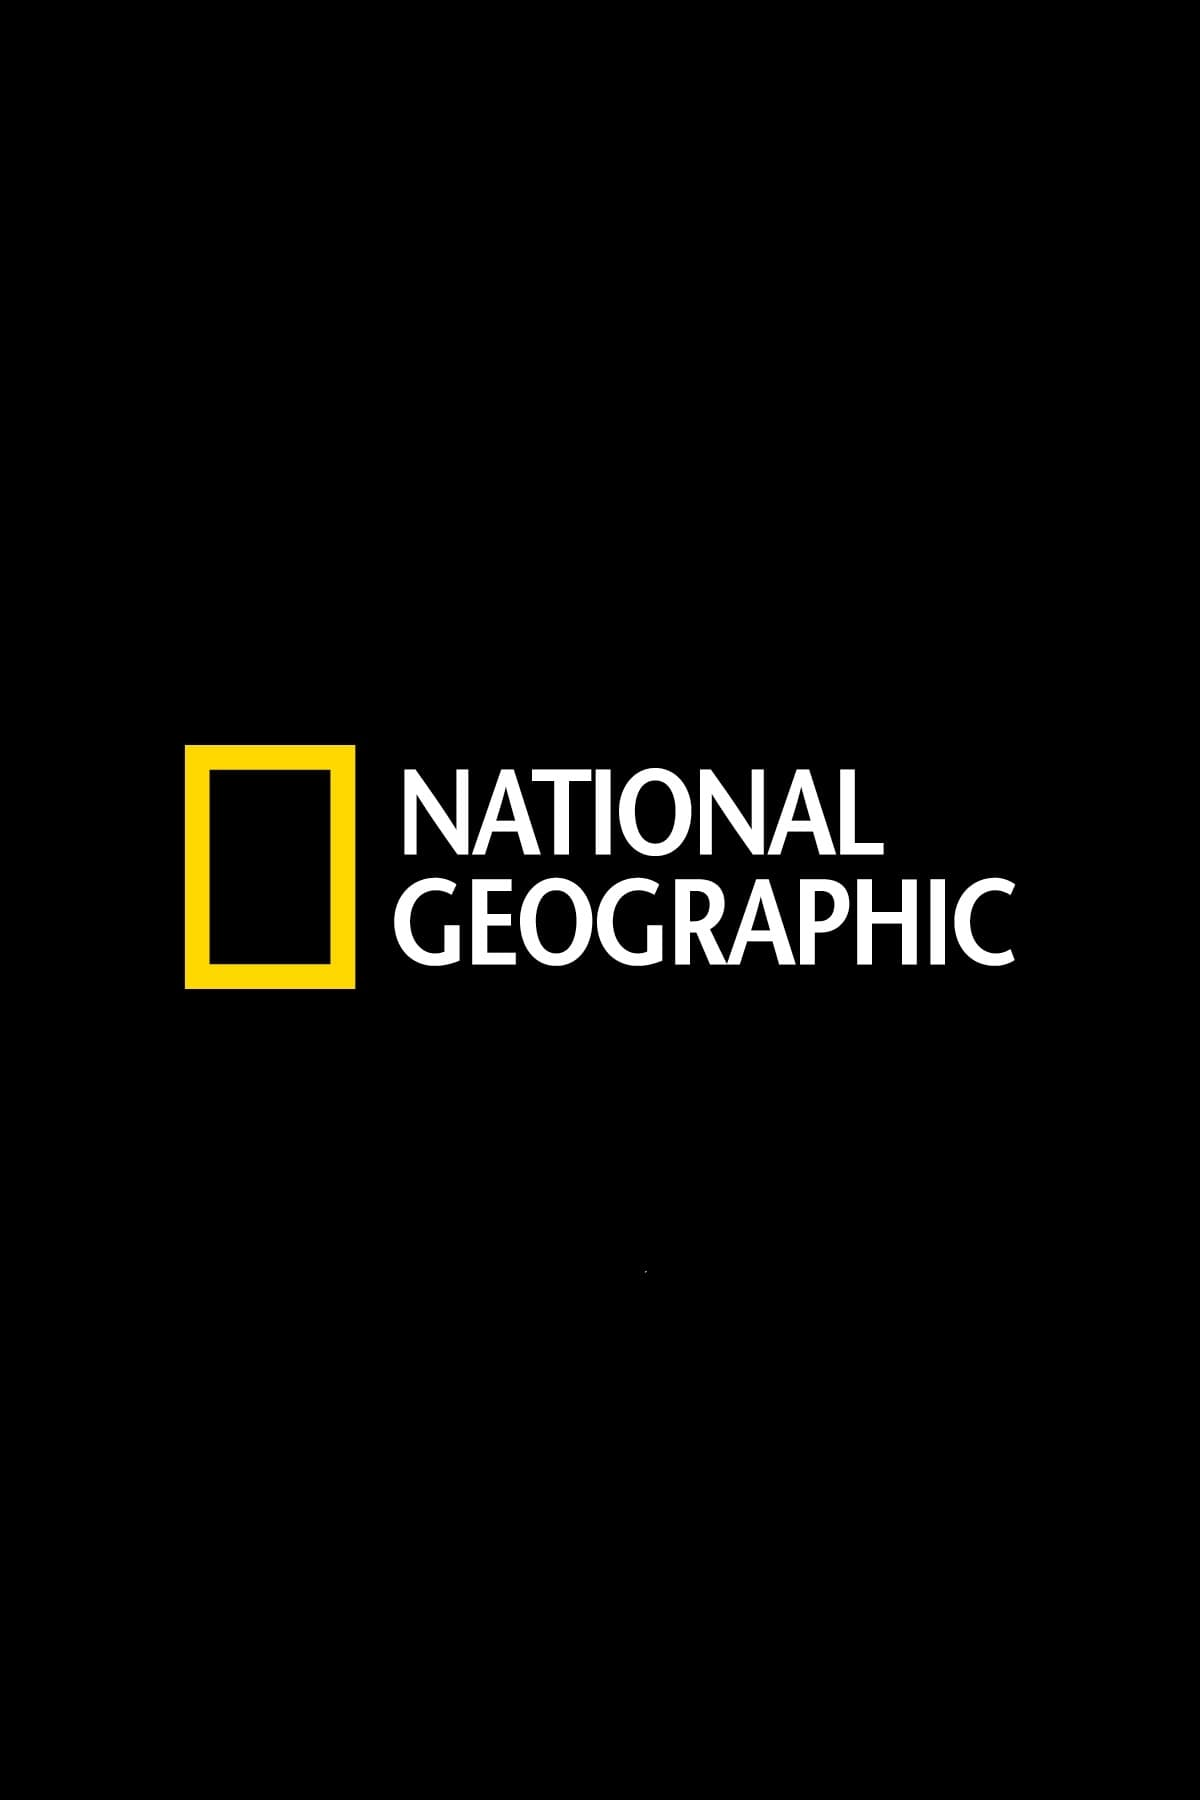 Adventures in Time: The National Geographic Millennium Special (1999)